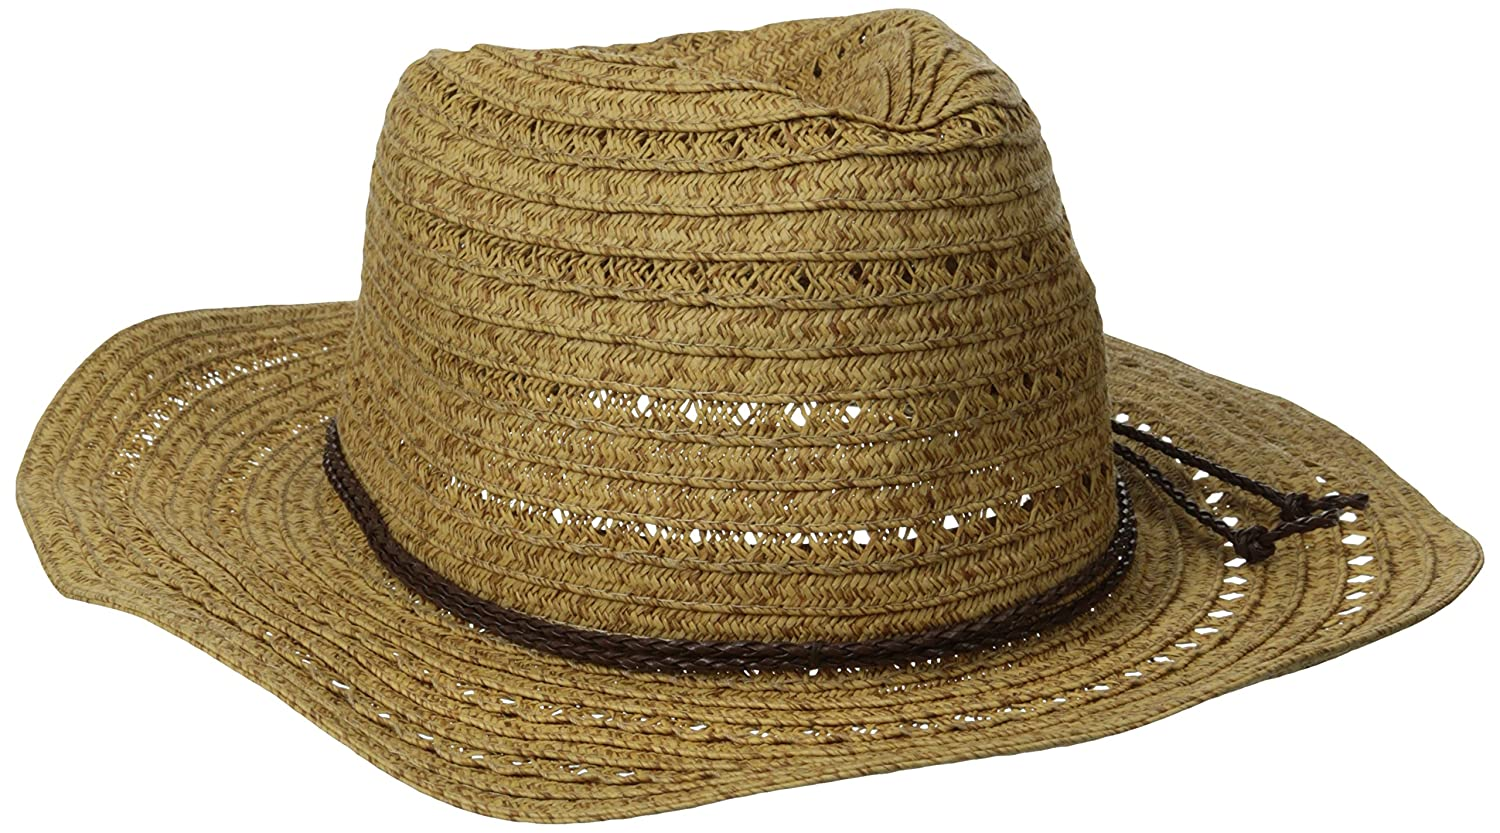 San Diego Hat Company Womens Open Weave Cowboy Hat with Braided Trim Natural One Size pbc1034